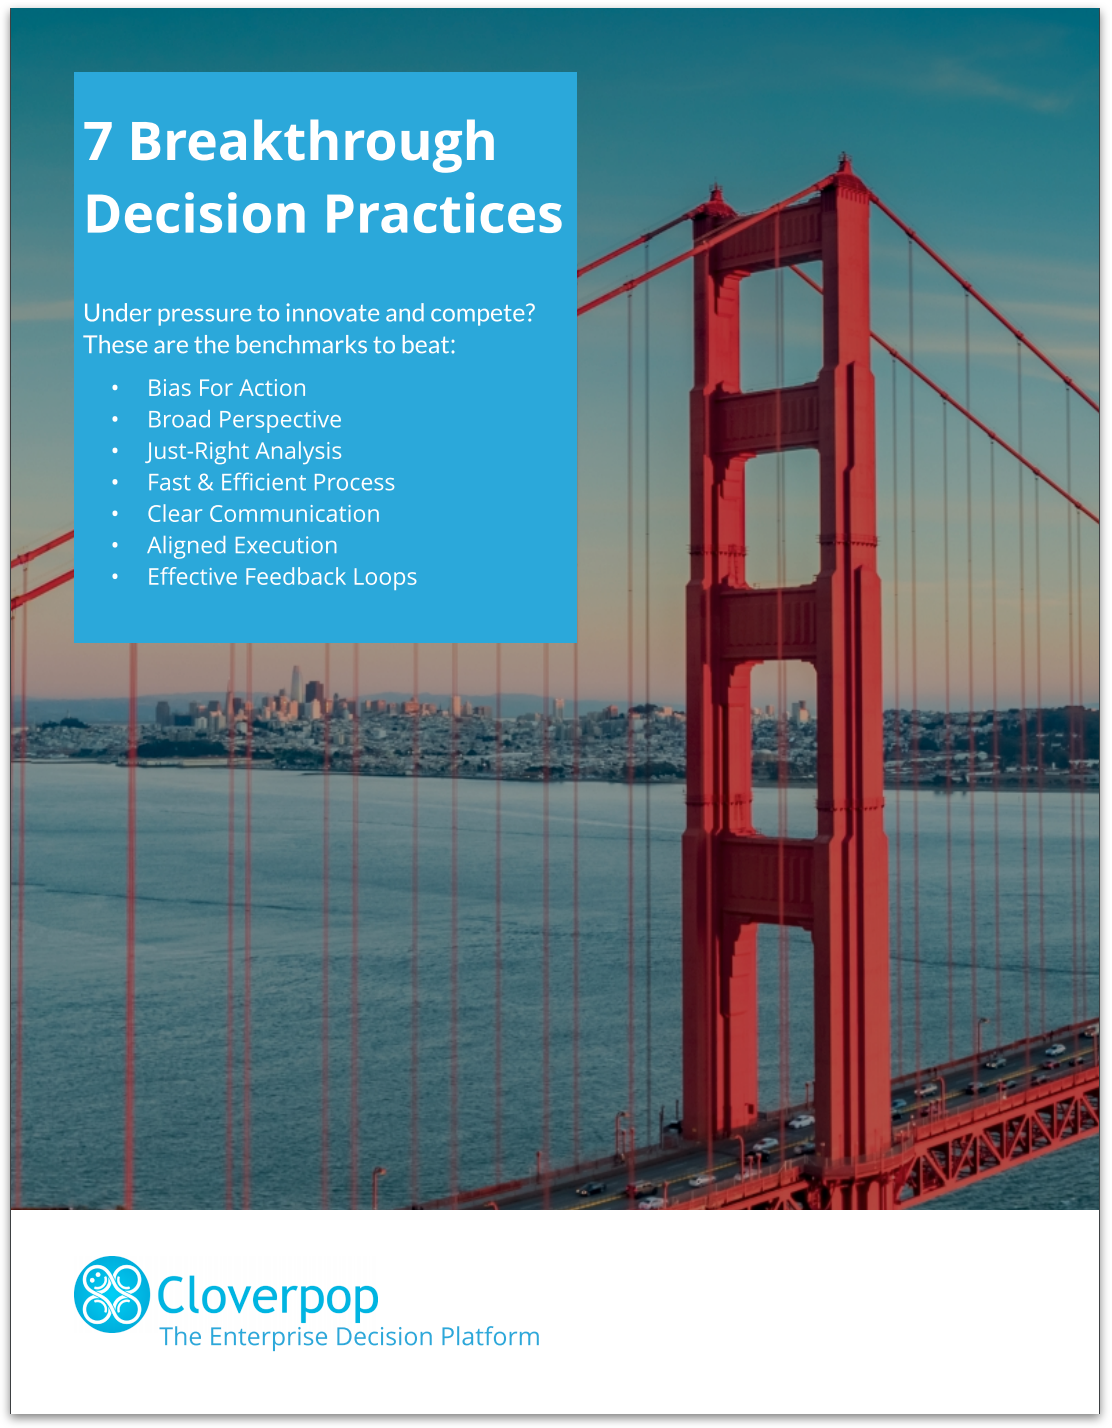 7 Breakthrough Decision Practices White Paper Cover.png